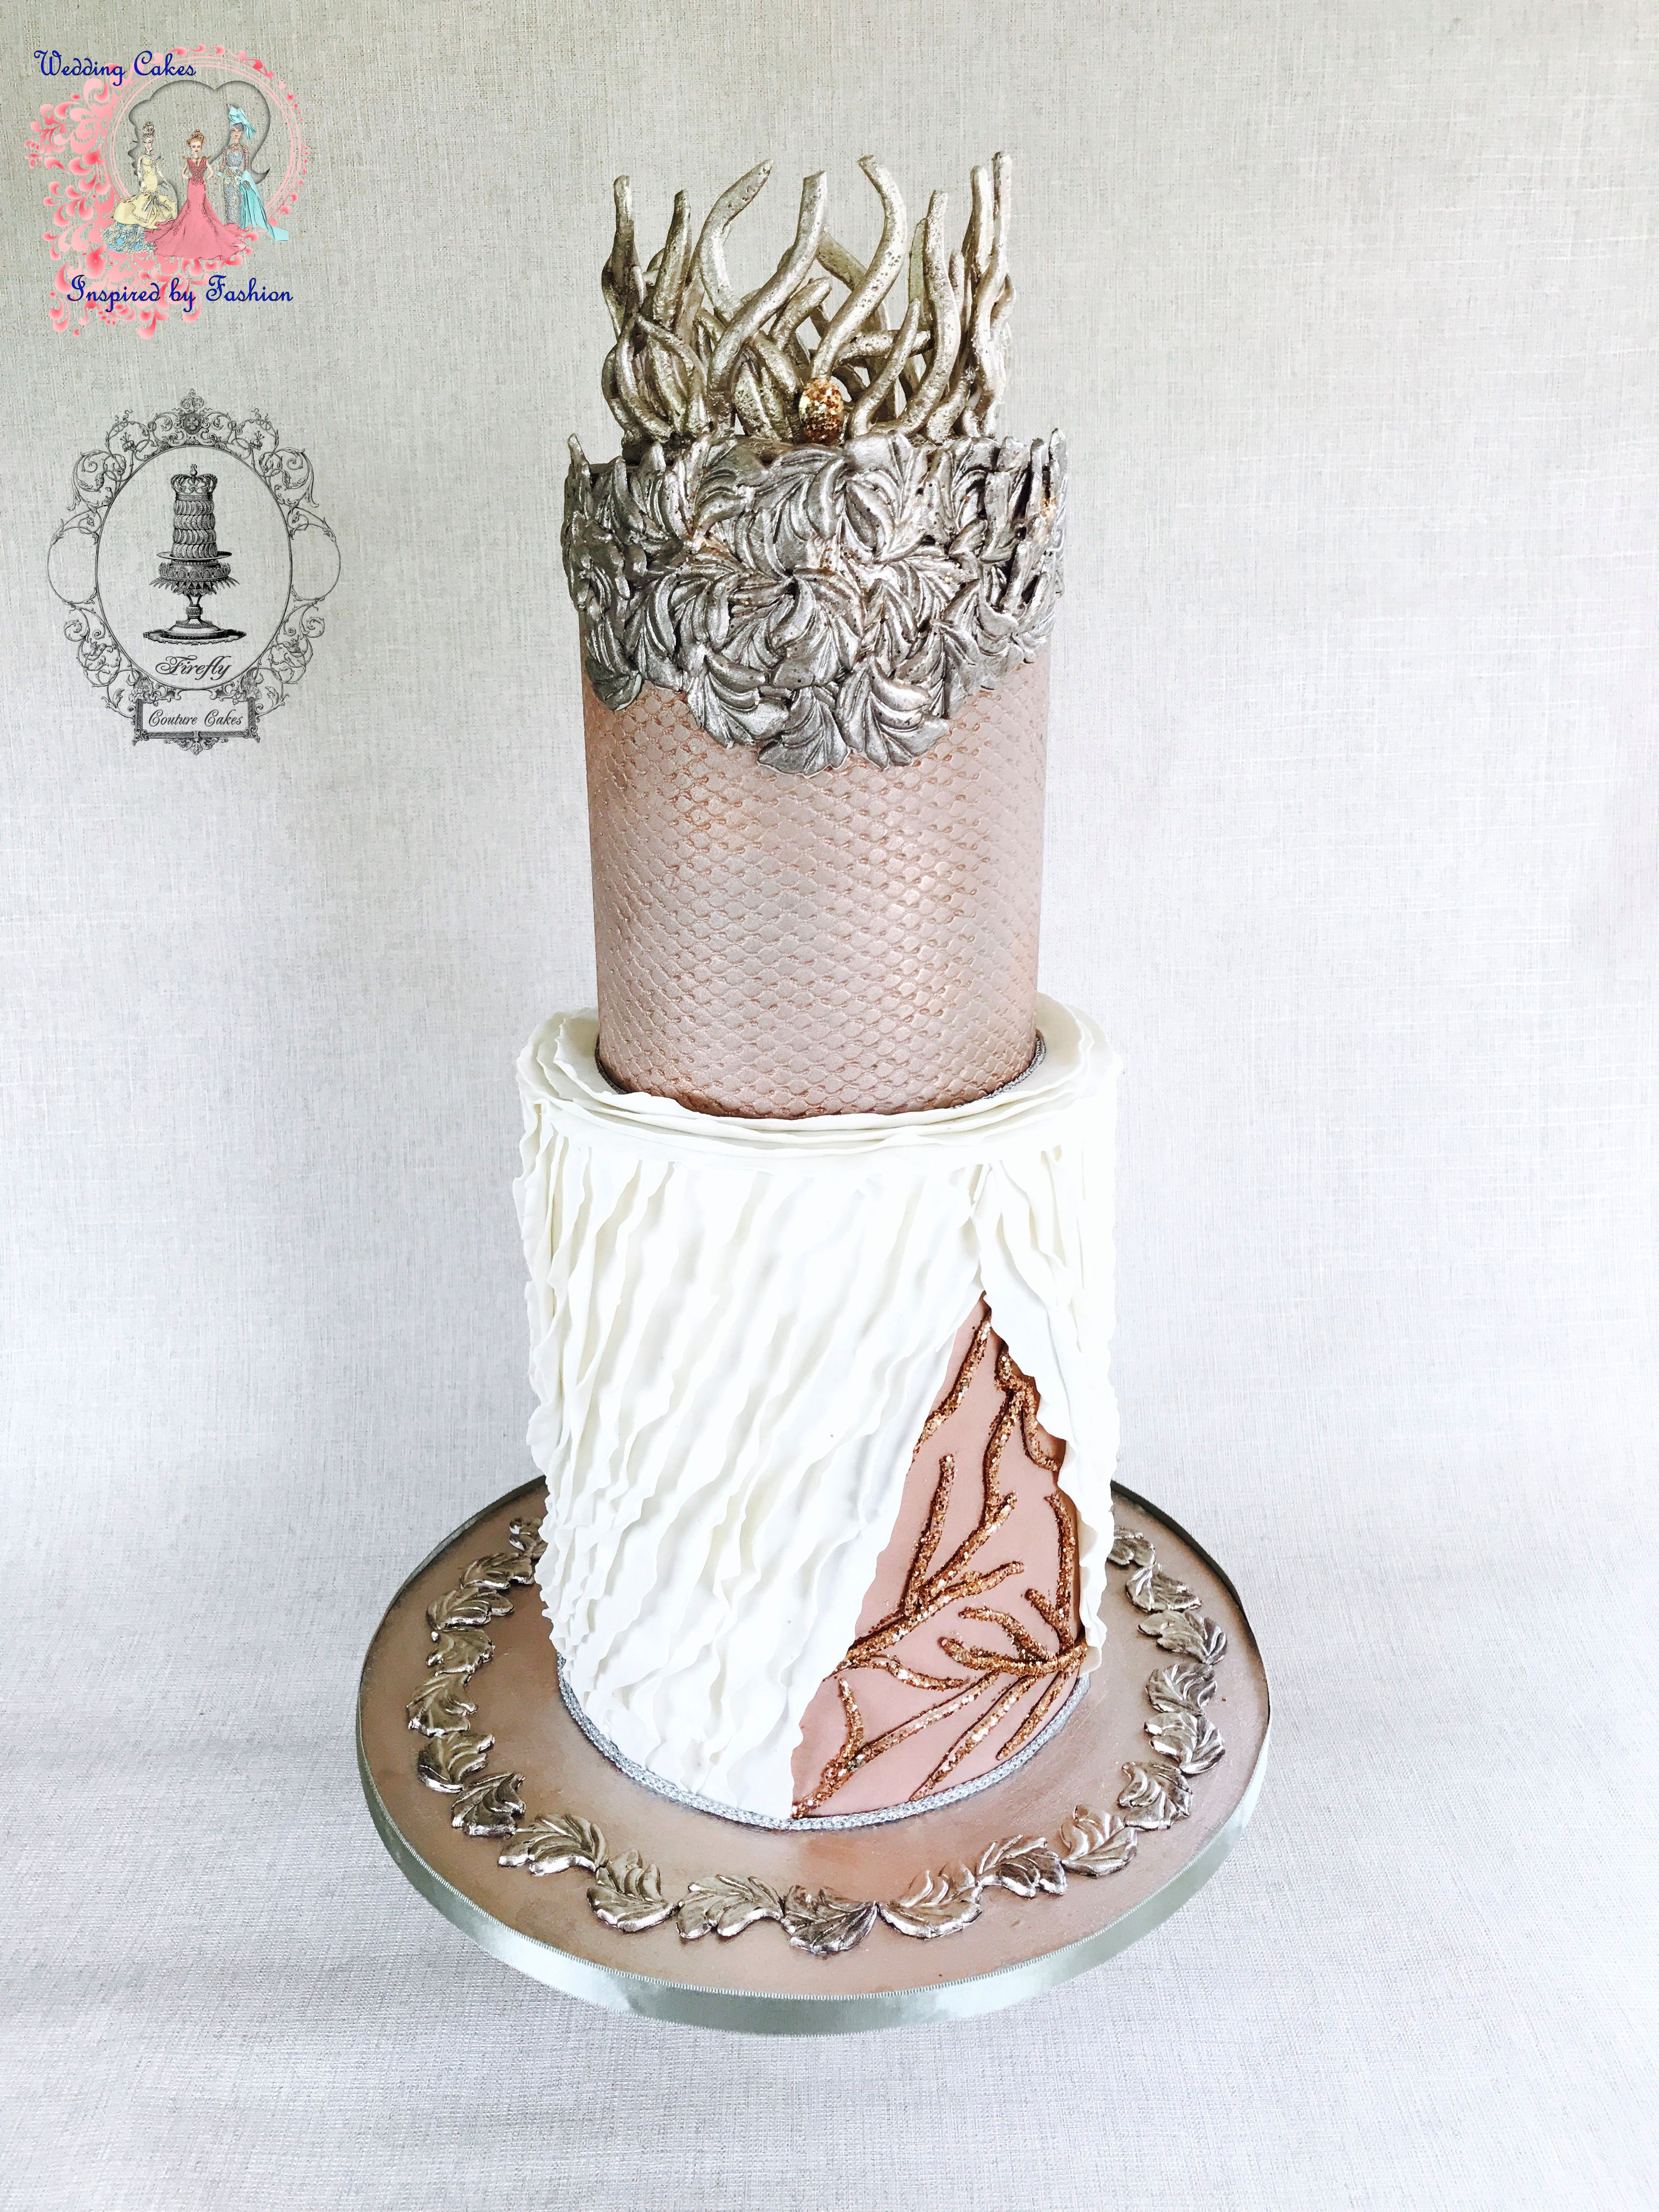 Wedding Cakes Inspired by Barbie Fashion - Satin Ice